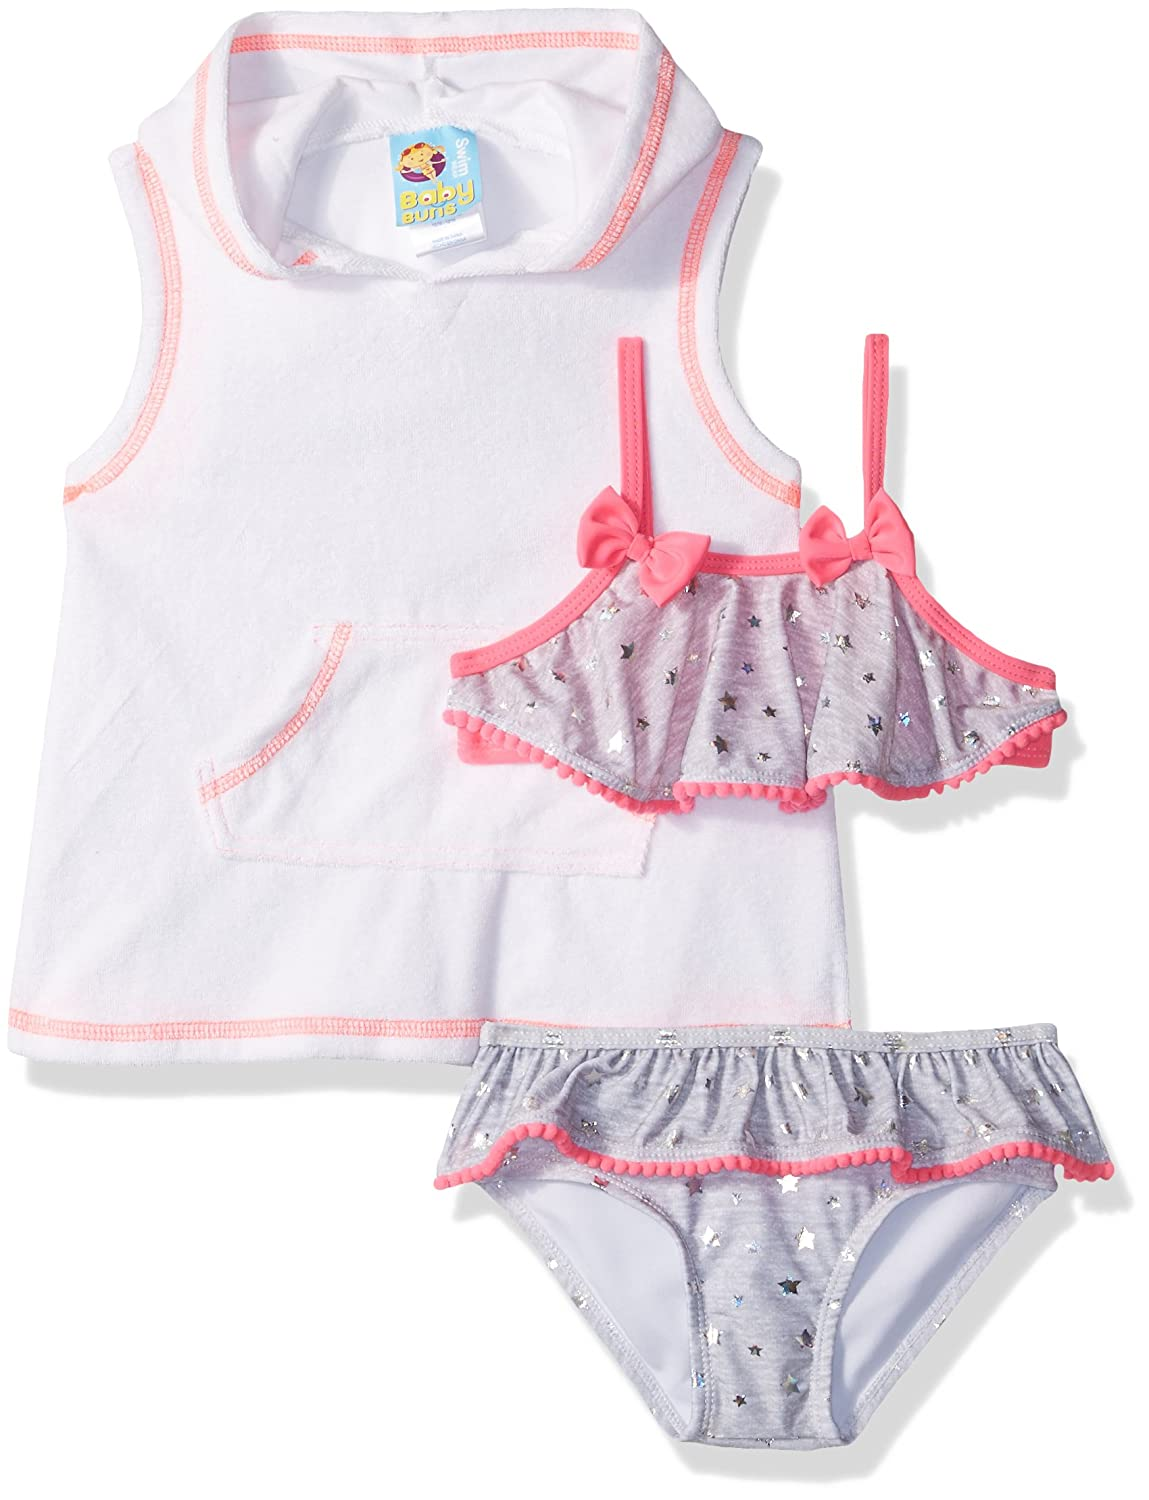 Baby Bunz Little Girls' Heart Dot Swimsuit